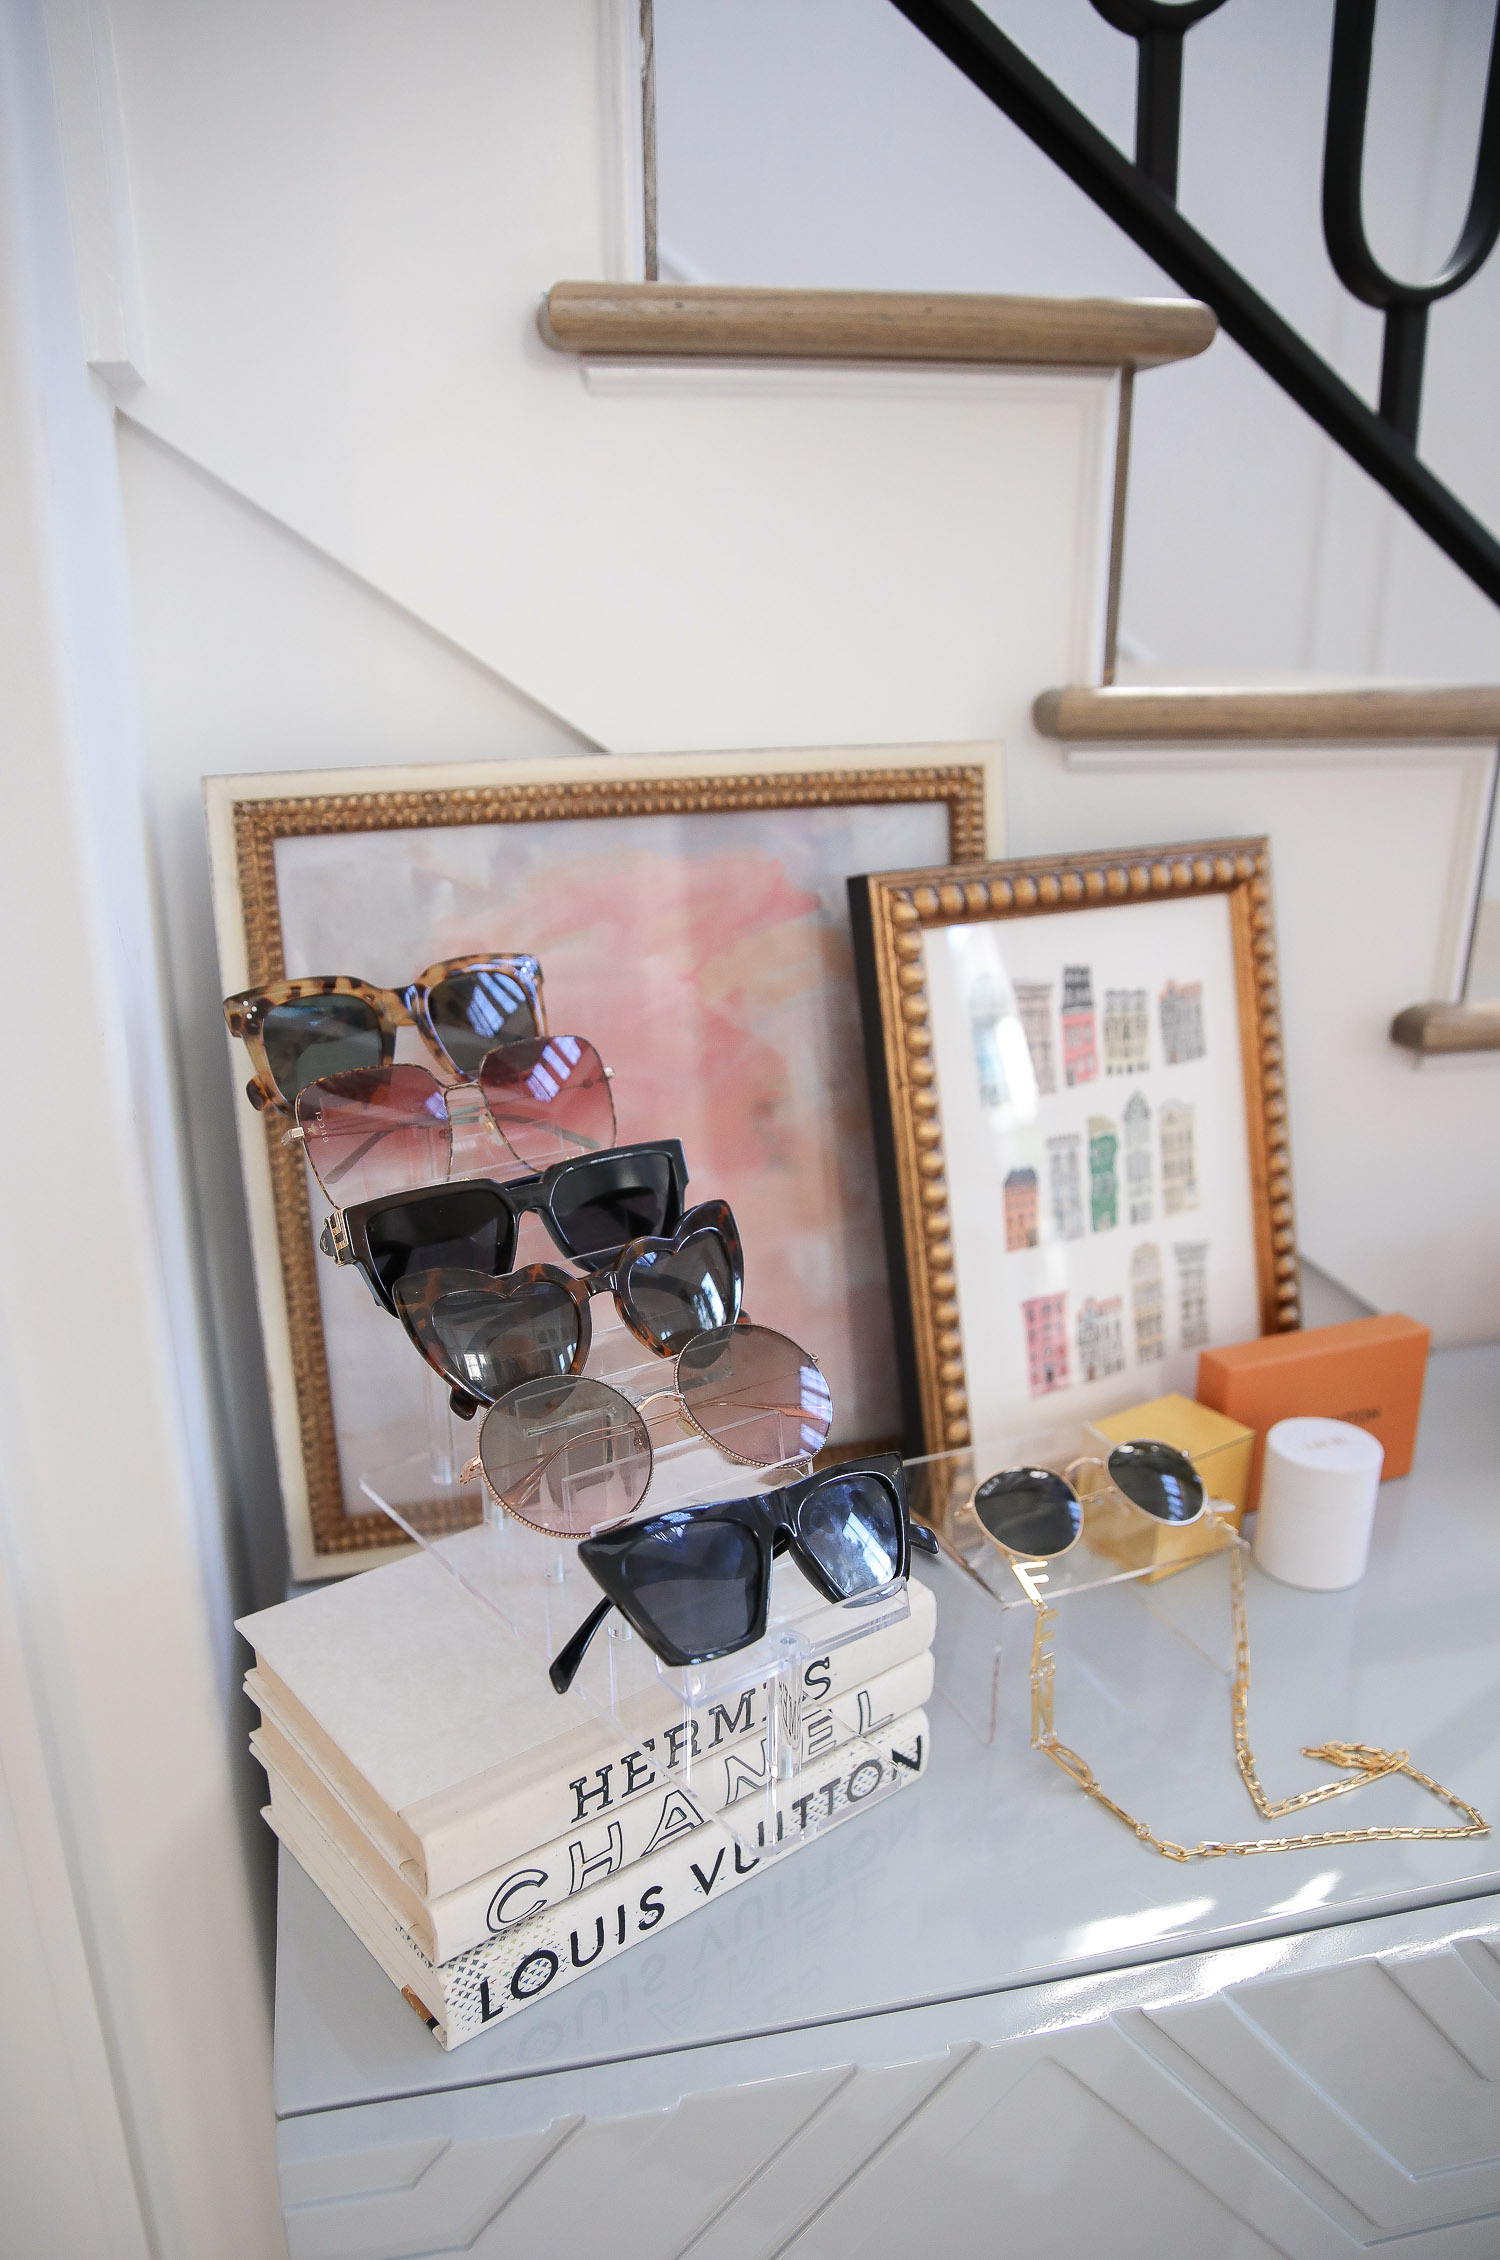 amazon must haves summer 2020, amazon home decor blog post, amazon luxury must haves, two story closet pinterest, emily gemma, closet organization | Amazon Favorites by popular US life and style blog, The Sweetest Thing: image of Urban Outfitter sunglasses, YSL sunglasses, Louis Vuitton sunglasses, and Dior sunglasses, organized on an acrylic display riser that's resting on top of a stack of Nordstrom Designer Reclaimed Book Art E. LAWRENCE, LTD. that's next to an Hermes tray and framed Parisian living wall art.